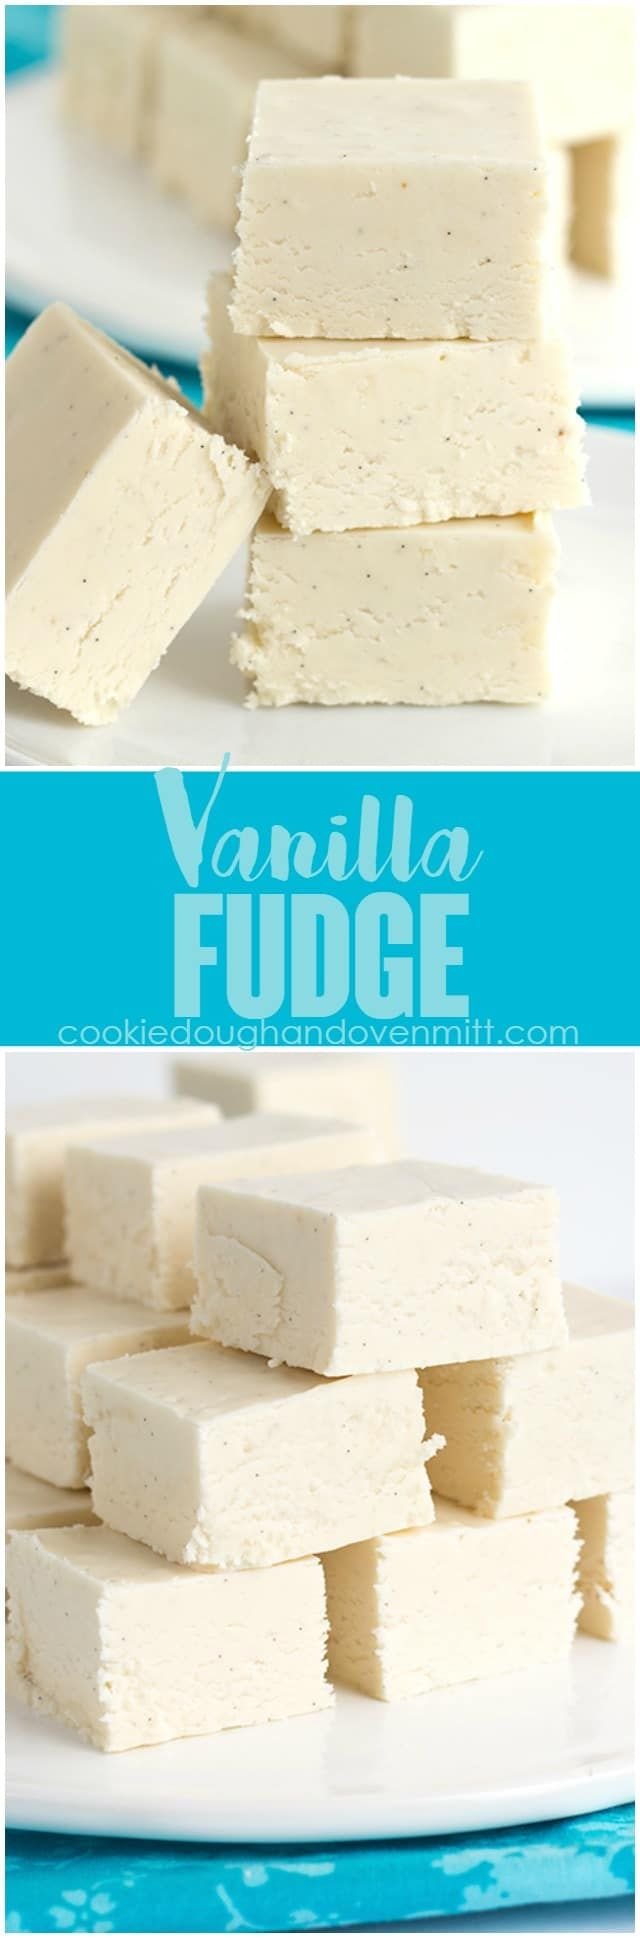 Vanilla fudge is smooth and creamy and so delicious. It's packed full of specks of vanilla bean too! This vanilla fudge recipe is so simple to make, and it's fudge made with marshmallow creme, aka marshmallow fluff!